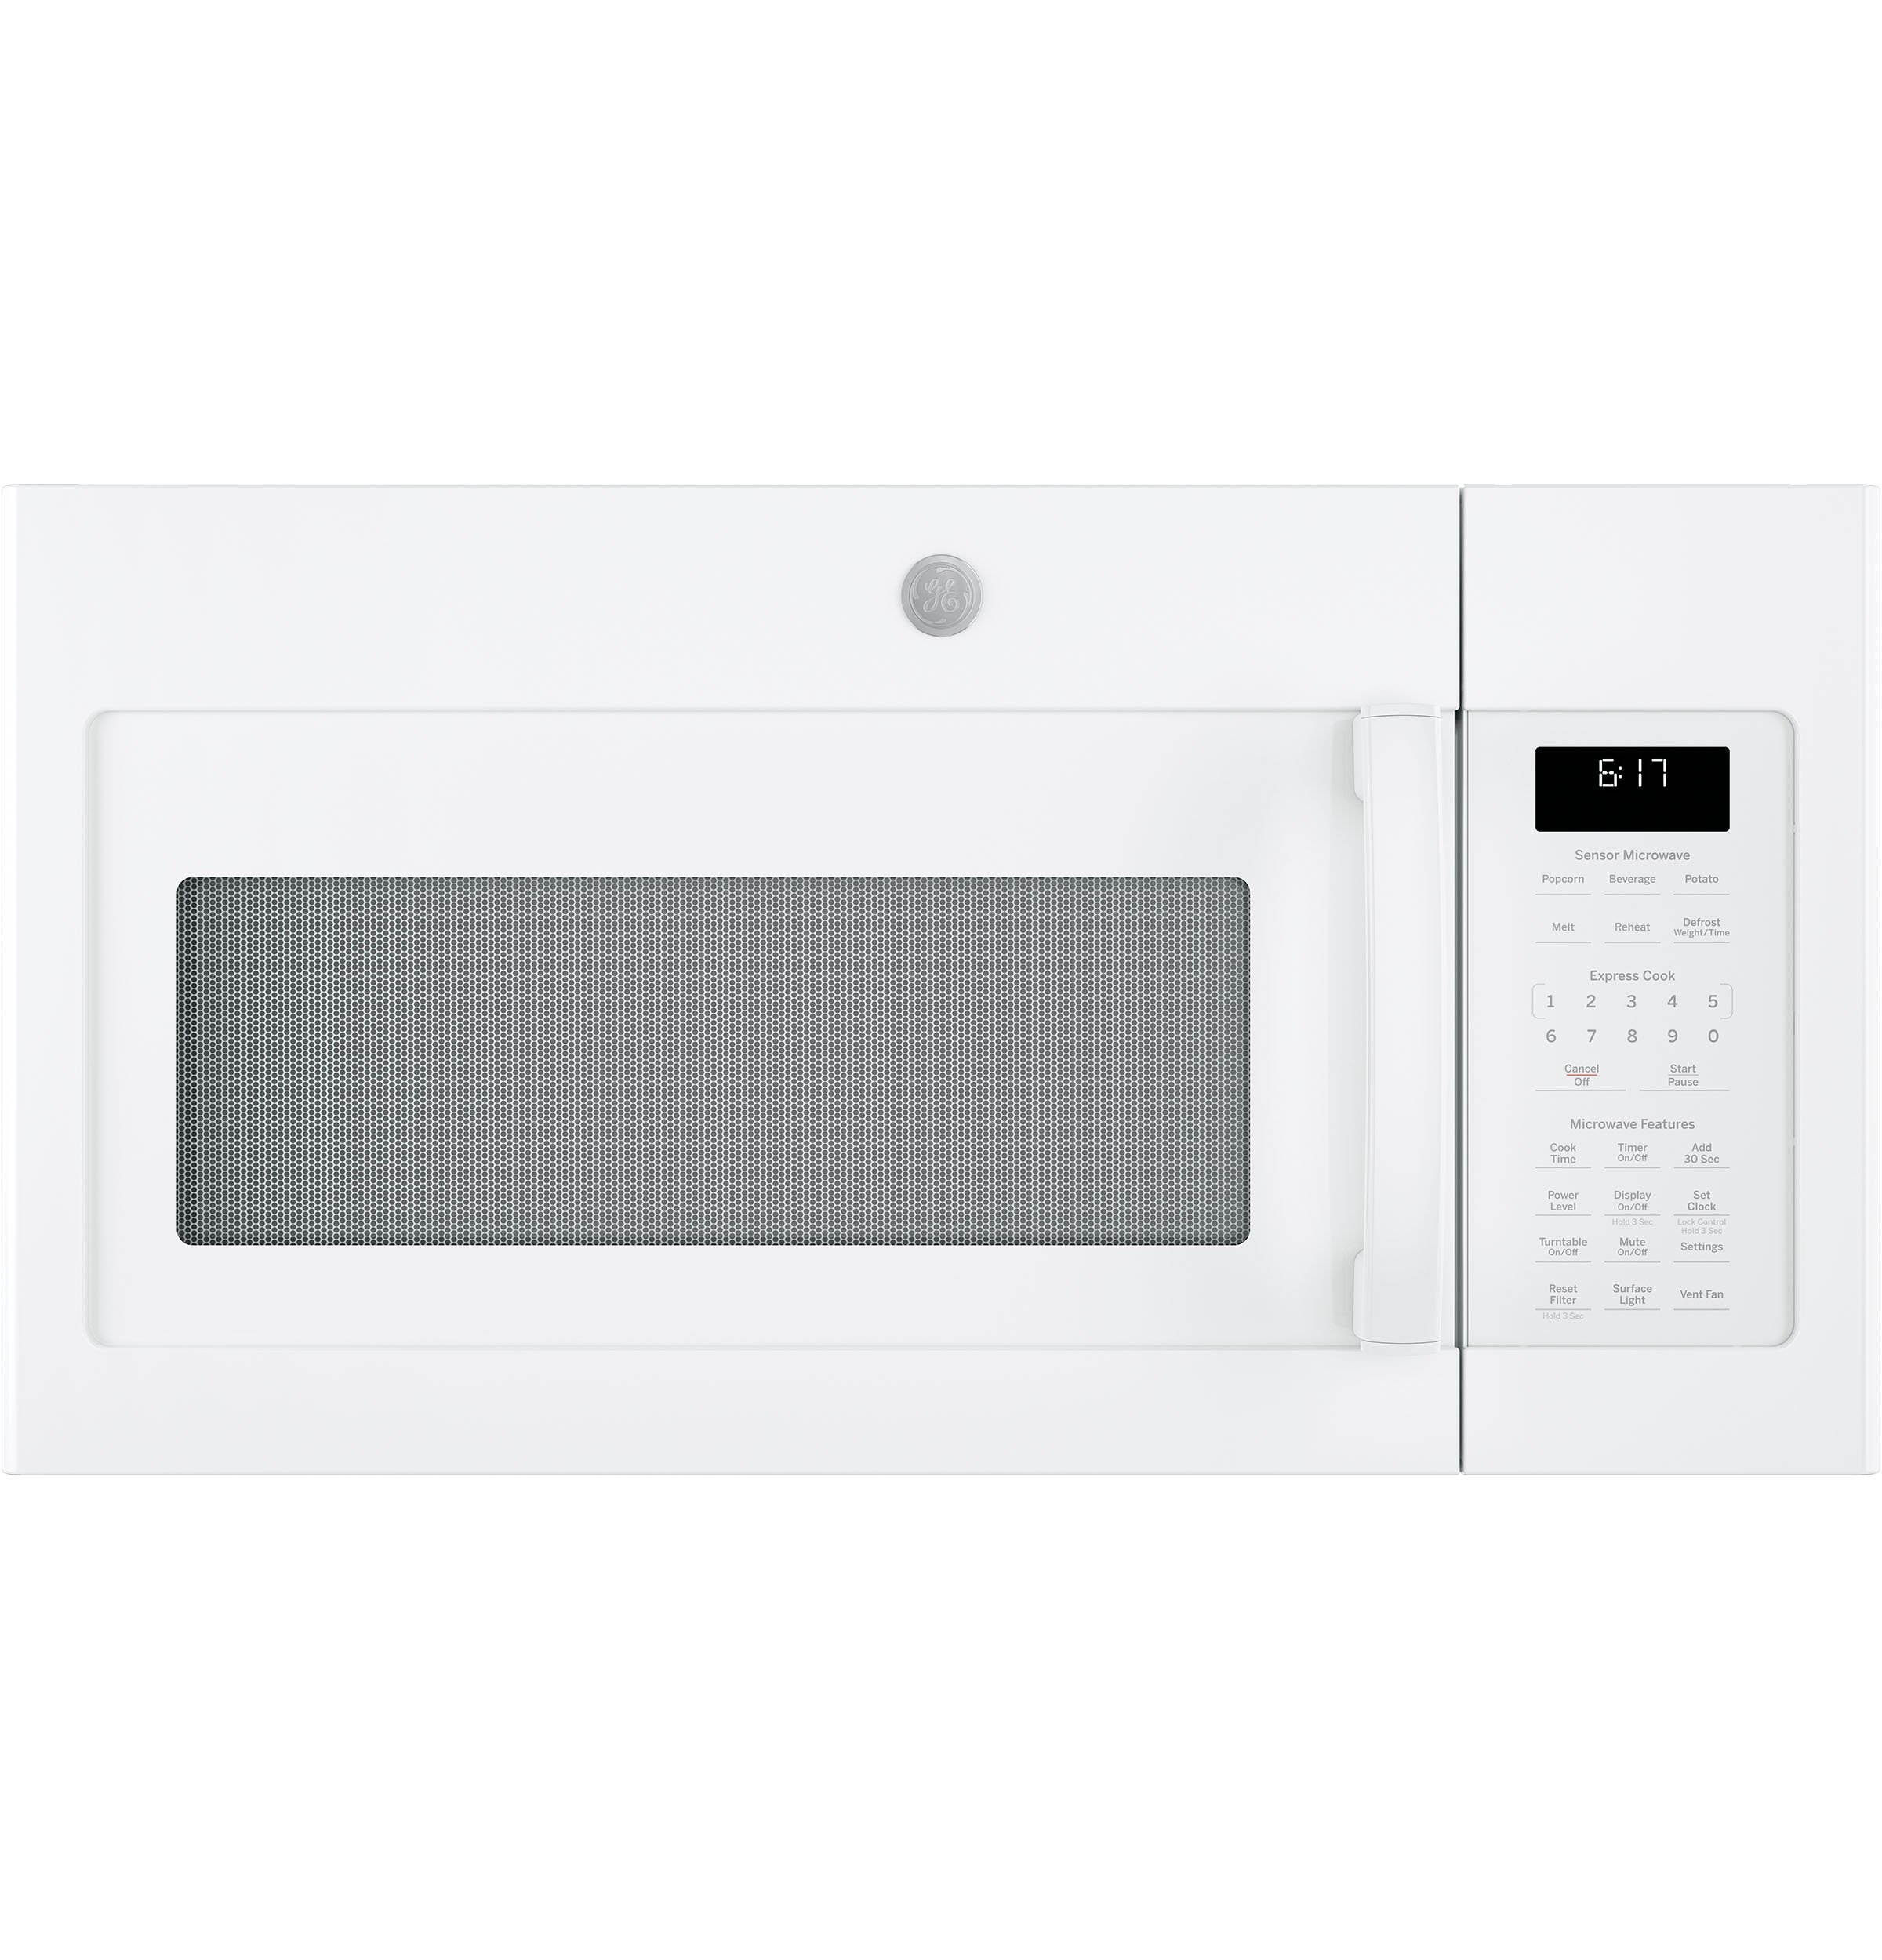 GE GE® 1.7 Cu. Ft. Over-the-Range Sensor Microwave Oven